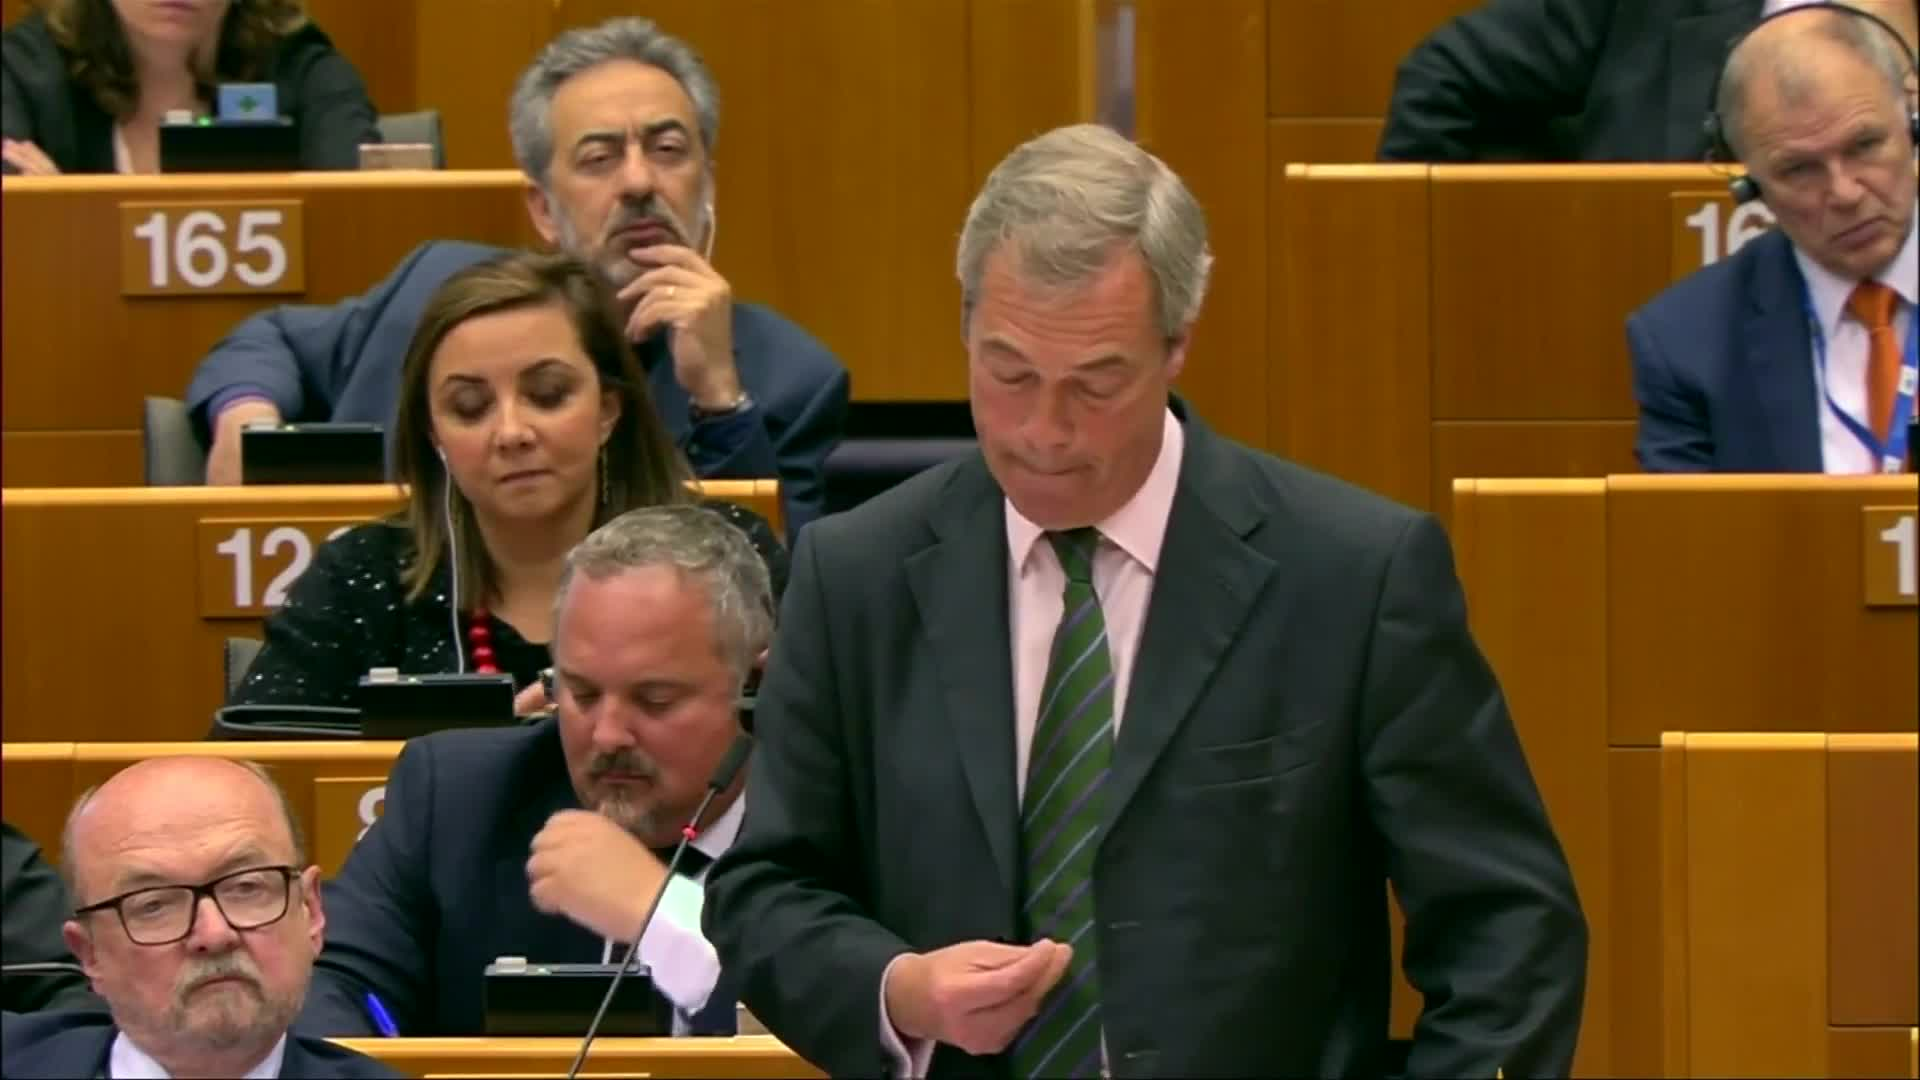 Nigel Farage's 'Victory' Speech To European Parliament Prompts Facepalms All Round